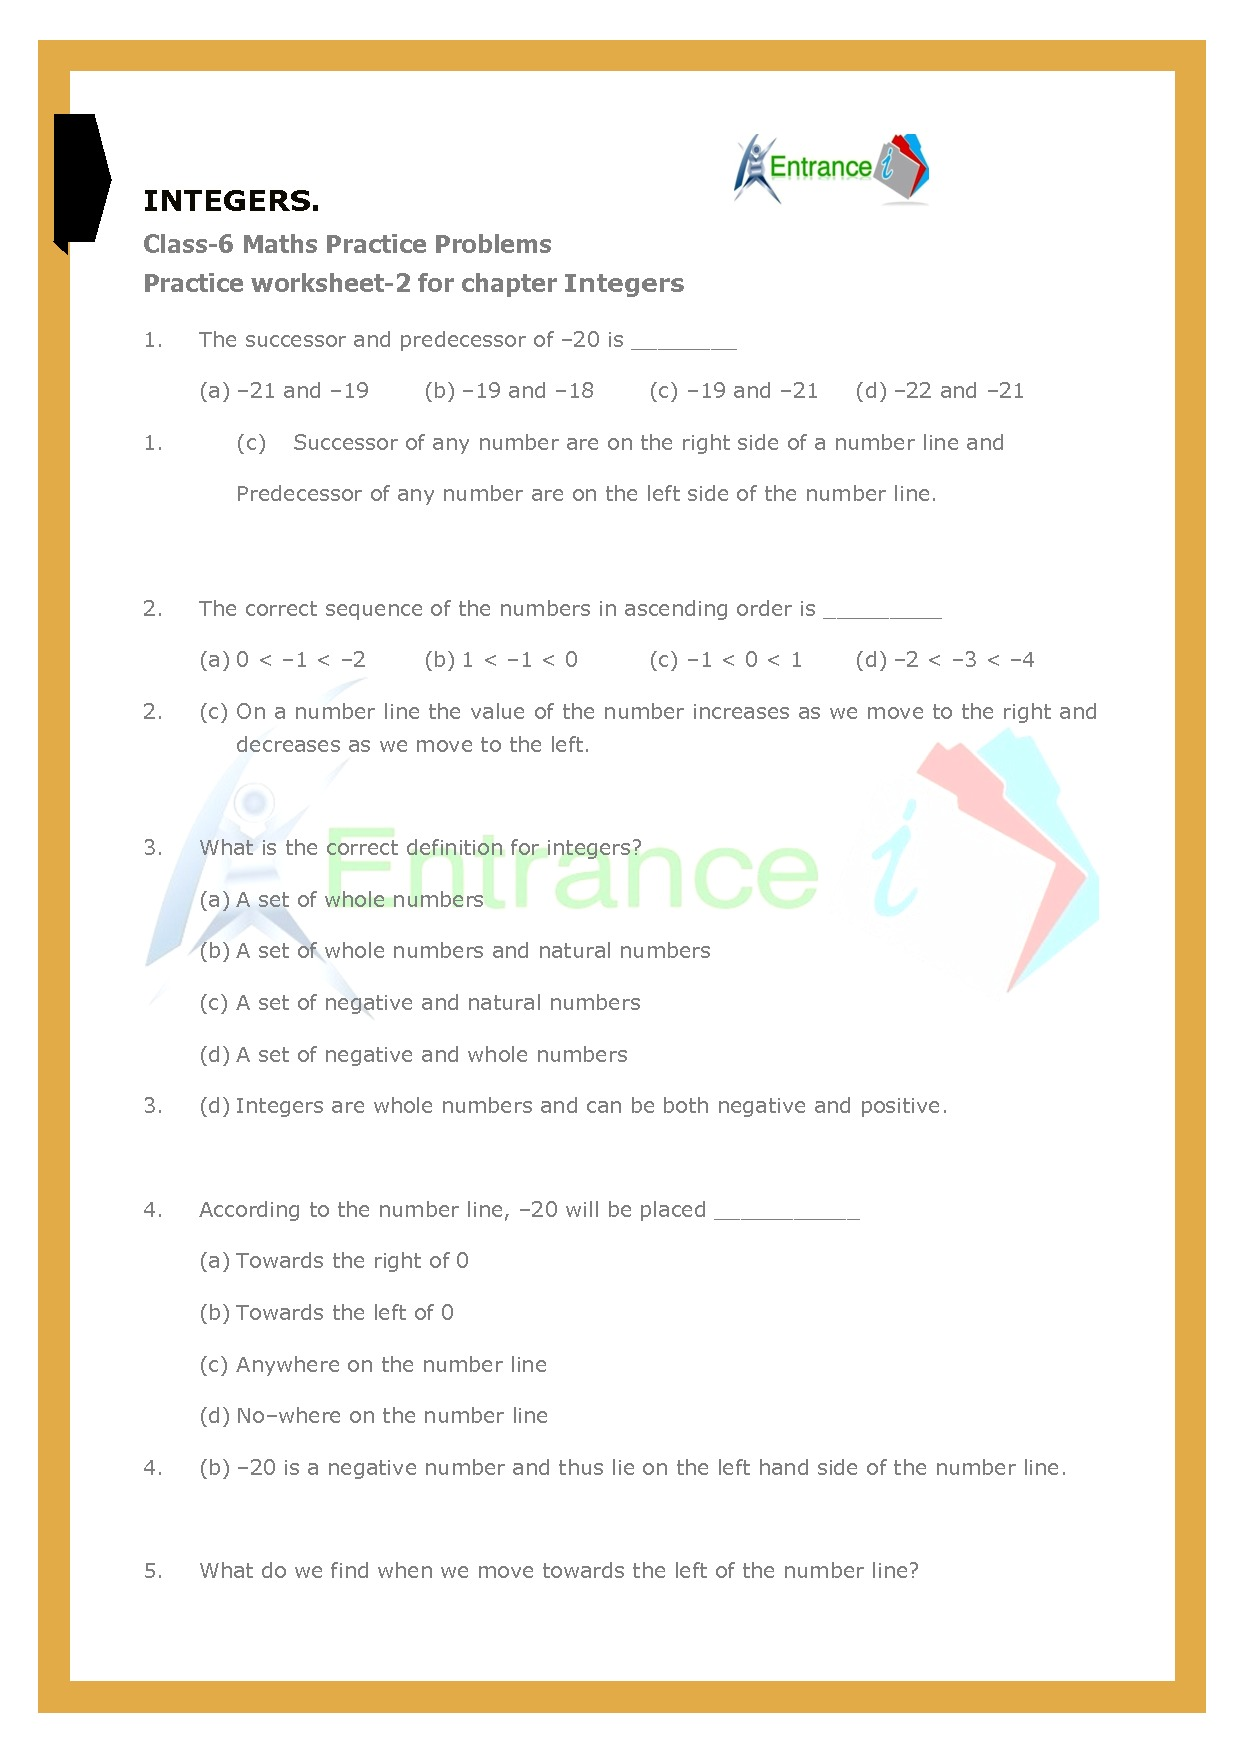 Worksheet 2 For Chapter Integers Class 6 Maths